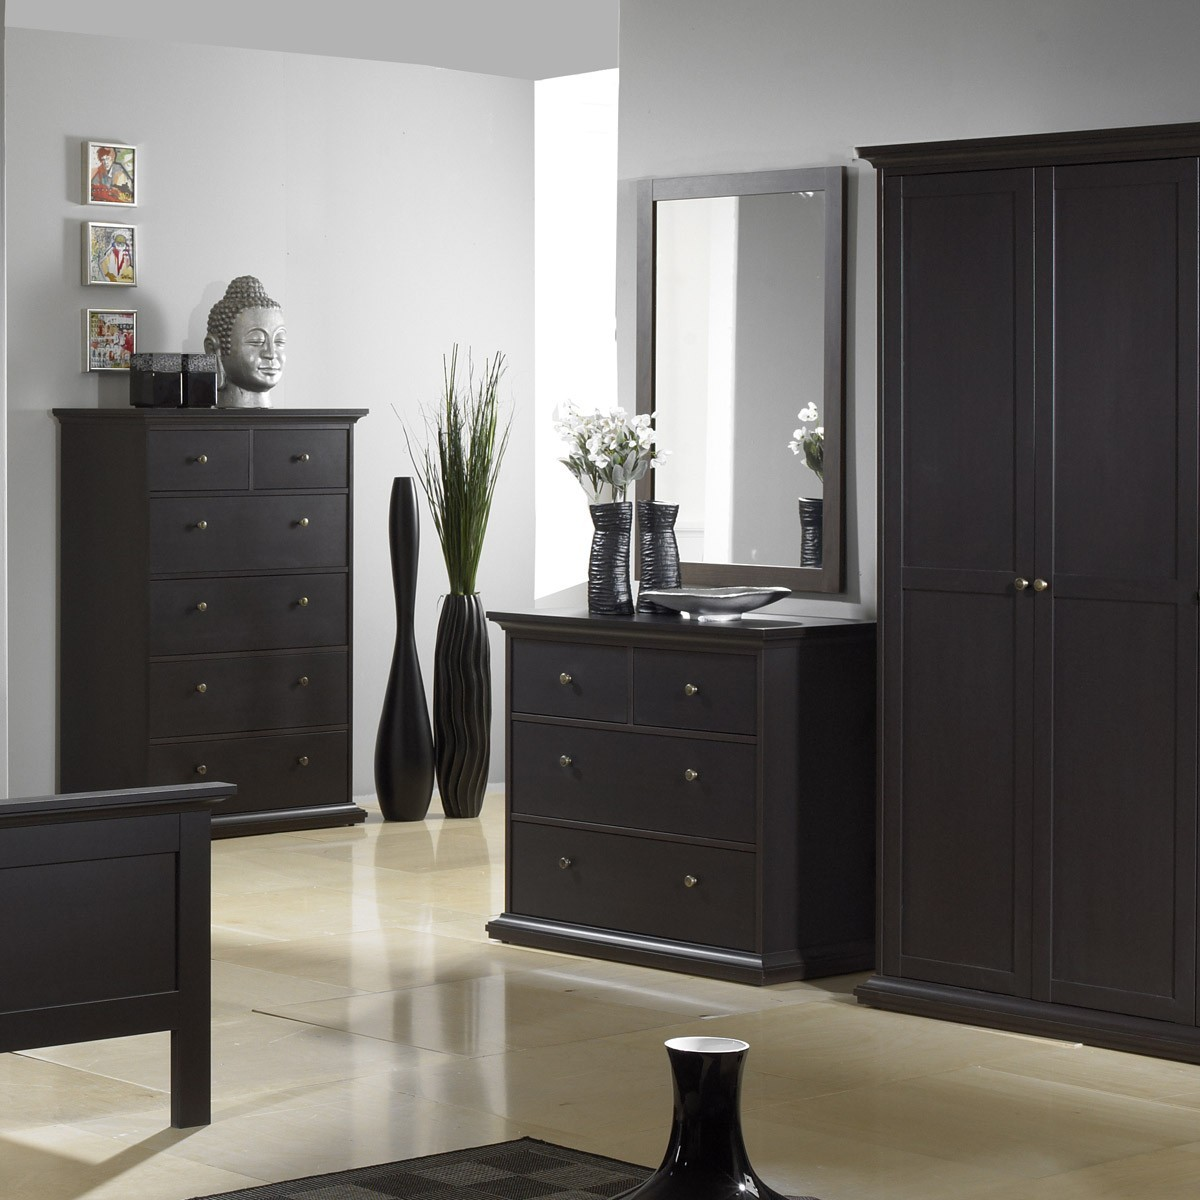 kleiderschrank schrank schlafzimmer venedig in braun. Black Bedroom Furniture Sets. Home Design Ideas